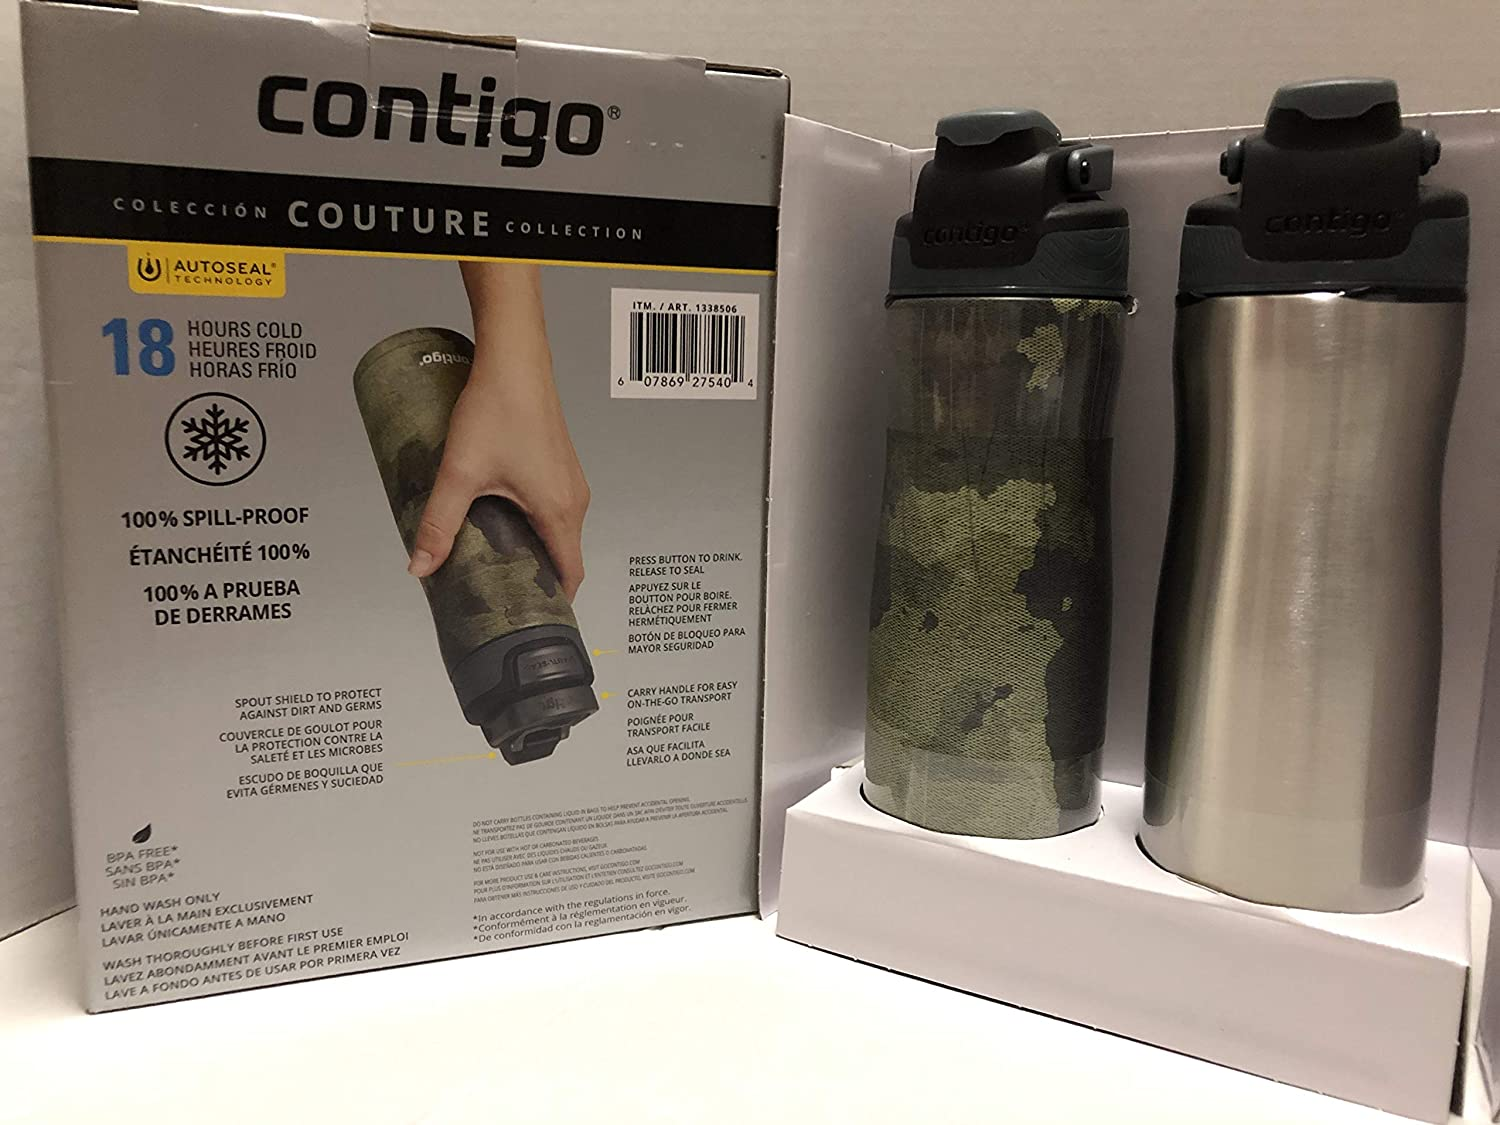 Contigo Primex Autoseal Couture 20oz Vacuum Insulated Stainless Steel Water Bottle, 2-Pack